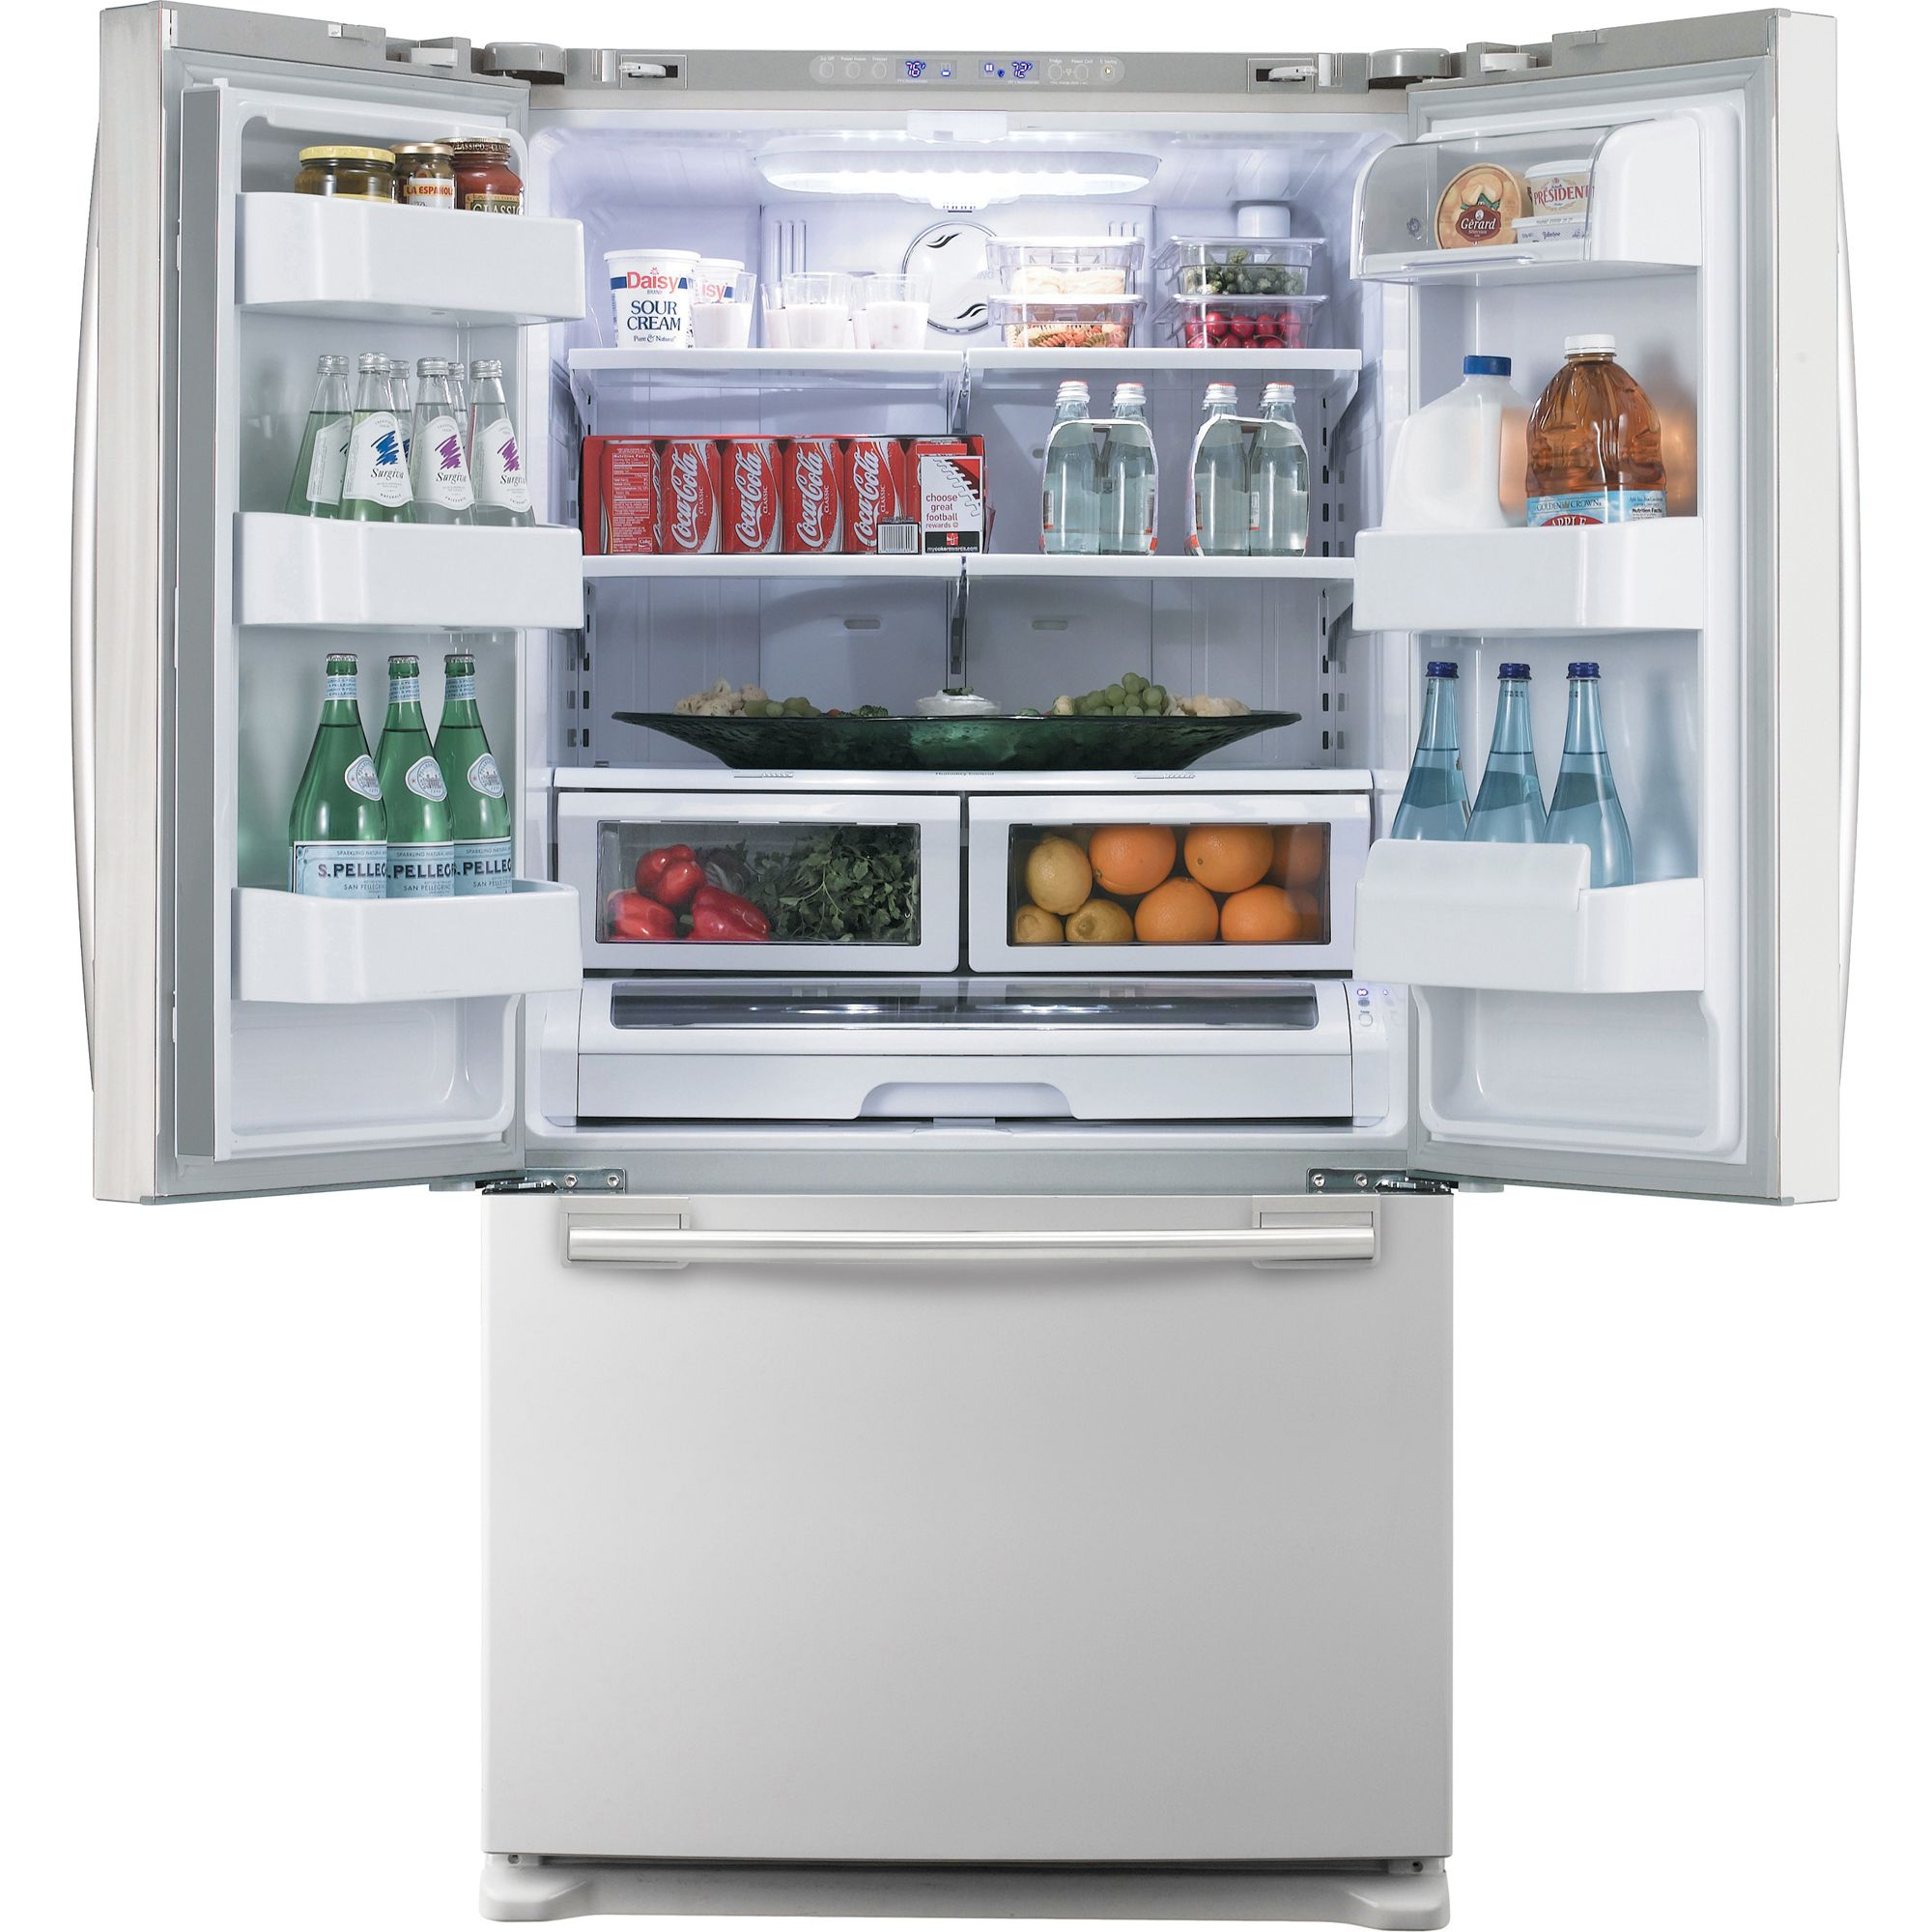 Samsung 26.0 cu. ft. Bottom-Freezer Refrigerator, White